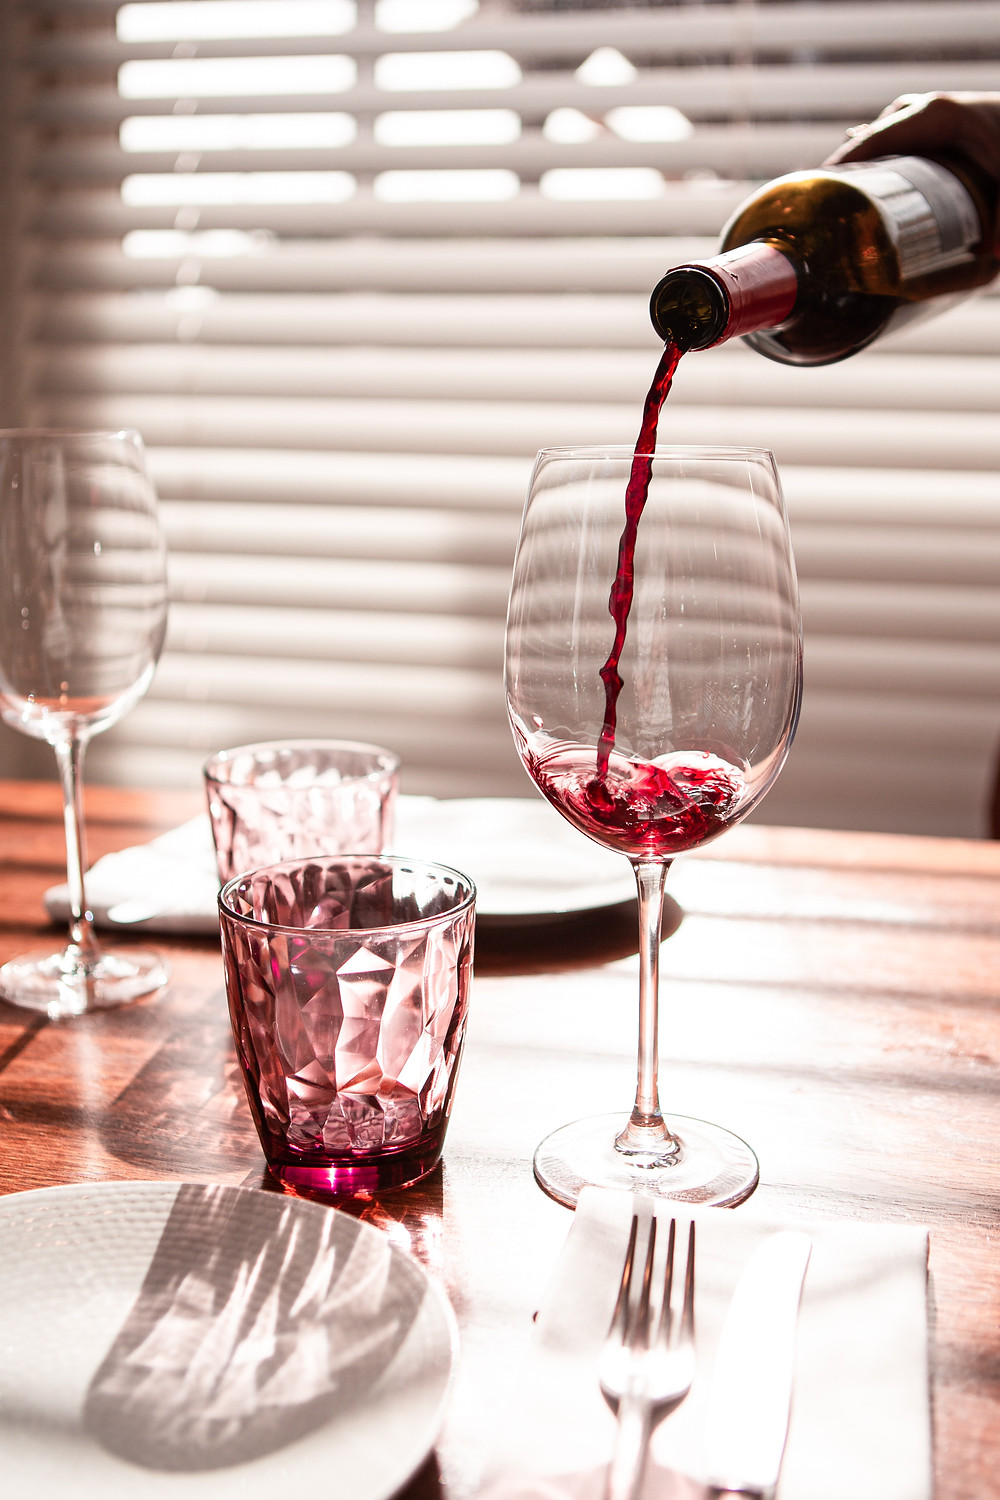 a table set for dinner, a hand is pouring red wine from a bottle into a large red wine glass